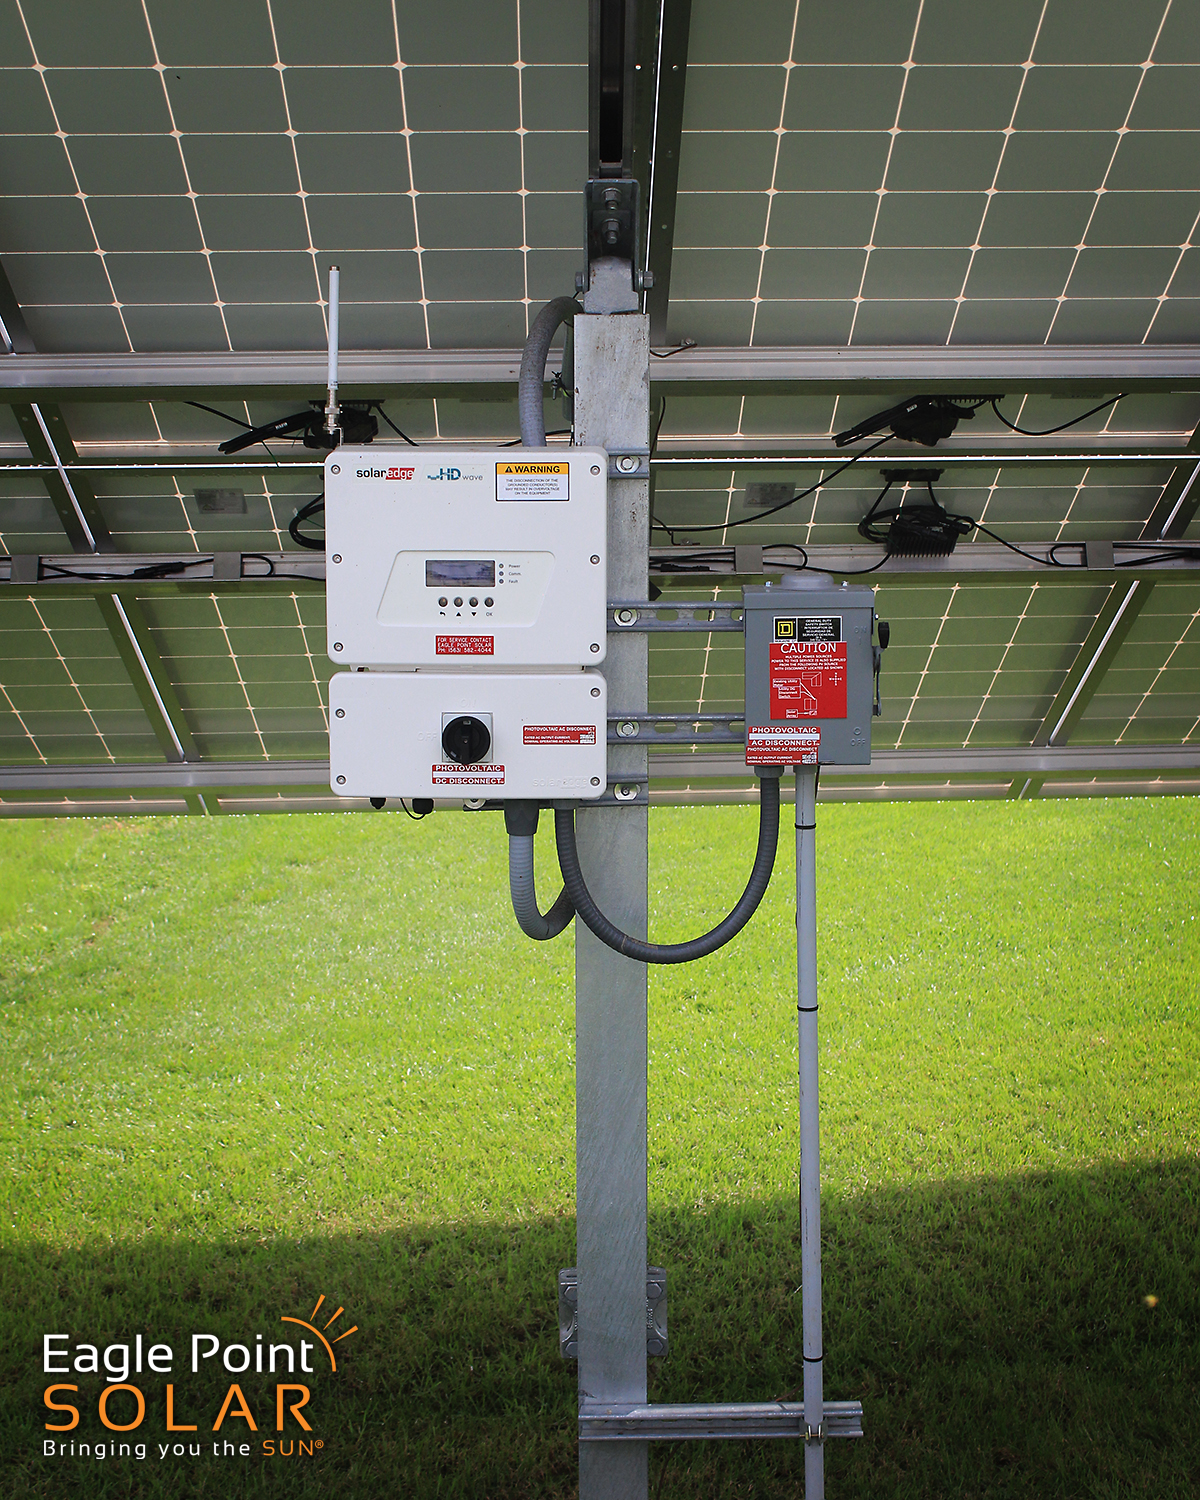 PHOTO OF GROUND MOUNTED SOLAR ARRAY COLE RESIDENTIAL, ILLINOIS_V5